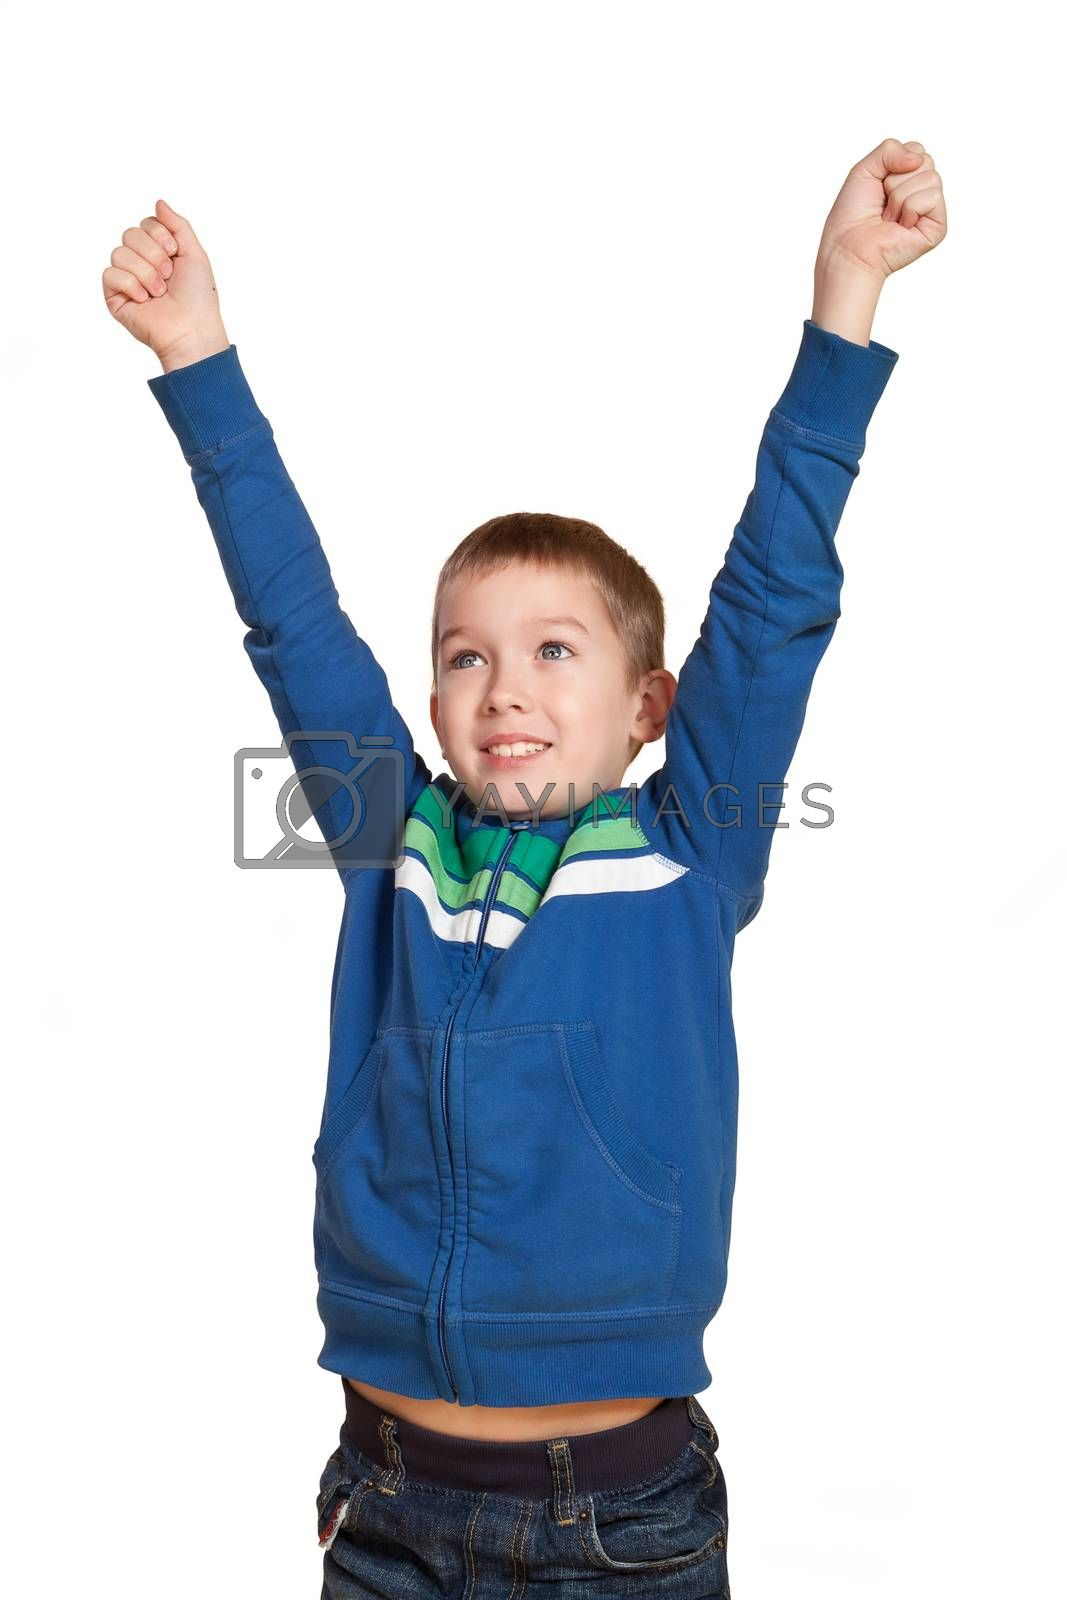 Young cute 10 year old white boy with hands in the air smiling expressing joy and victory. Expressions concept.